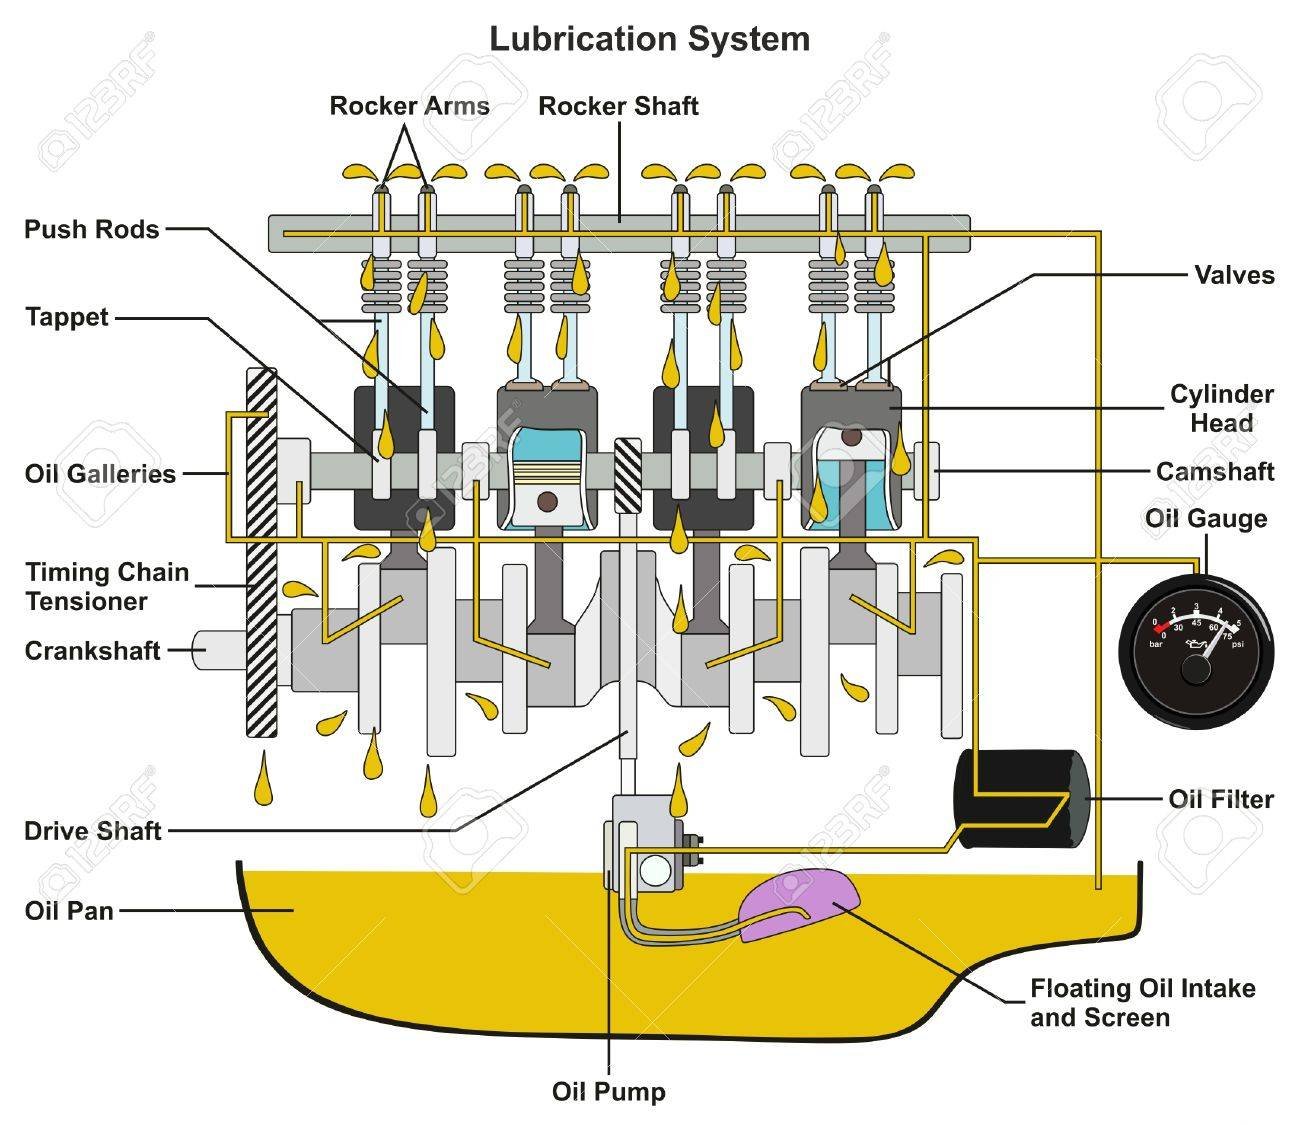 hight resolution of vehicle lubrication system infographic diagram showing cross car engine oil diagram car oil diagram